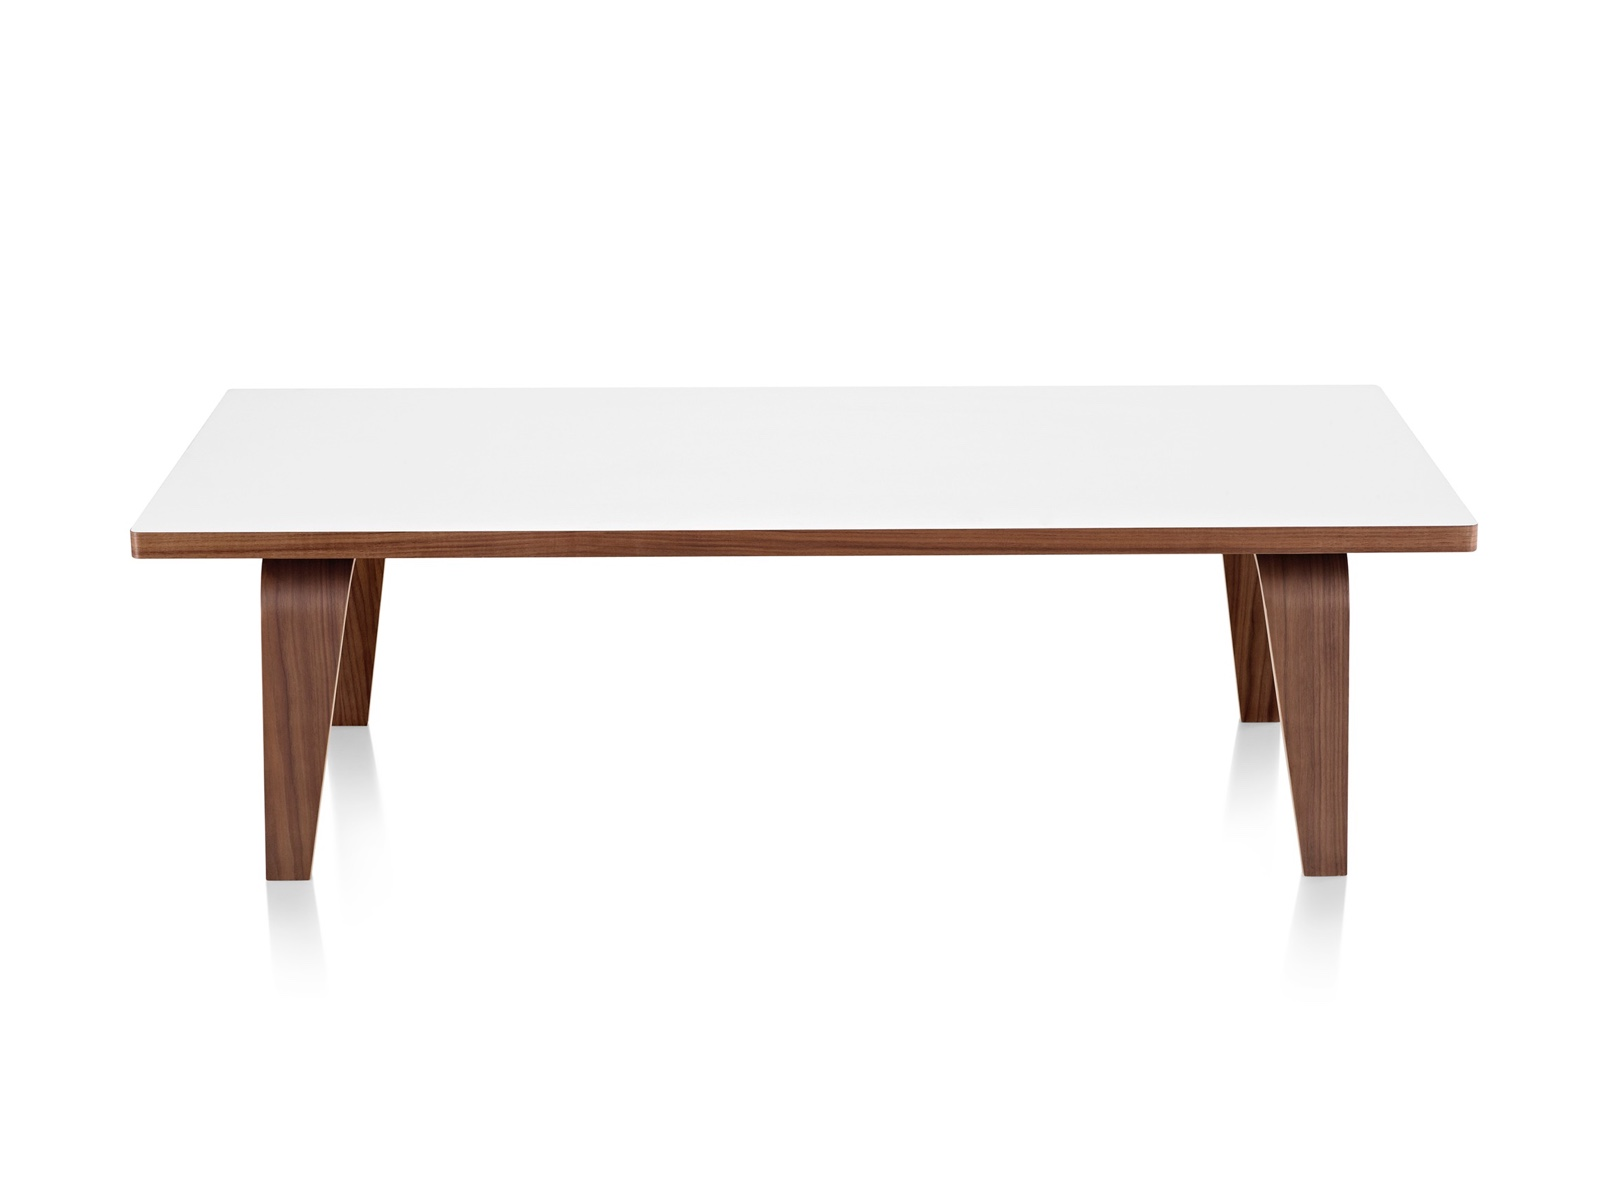 An Eames Rectangular Coffee Table with a white top and molded plywood legs in a medium finish.